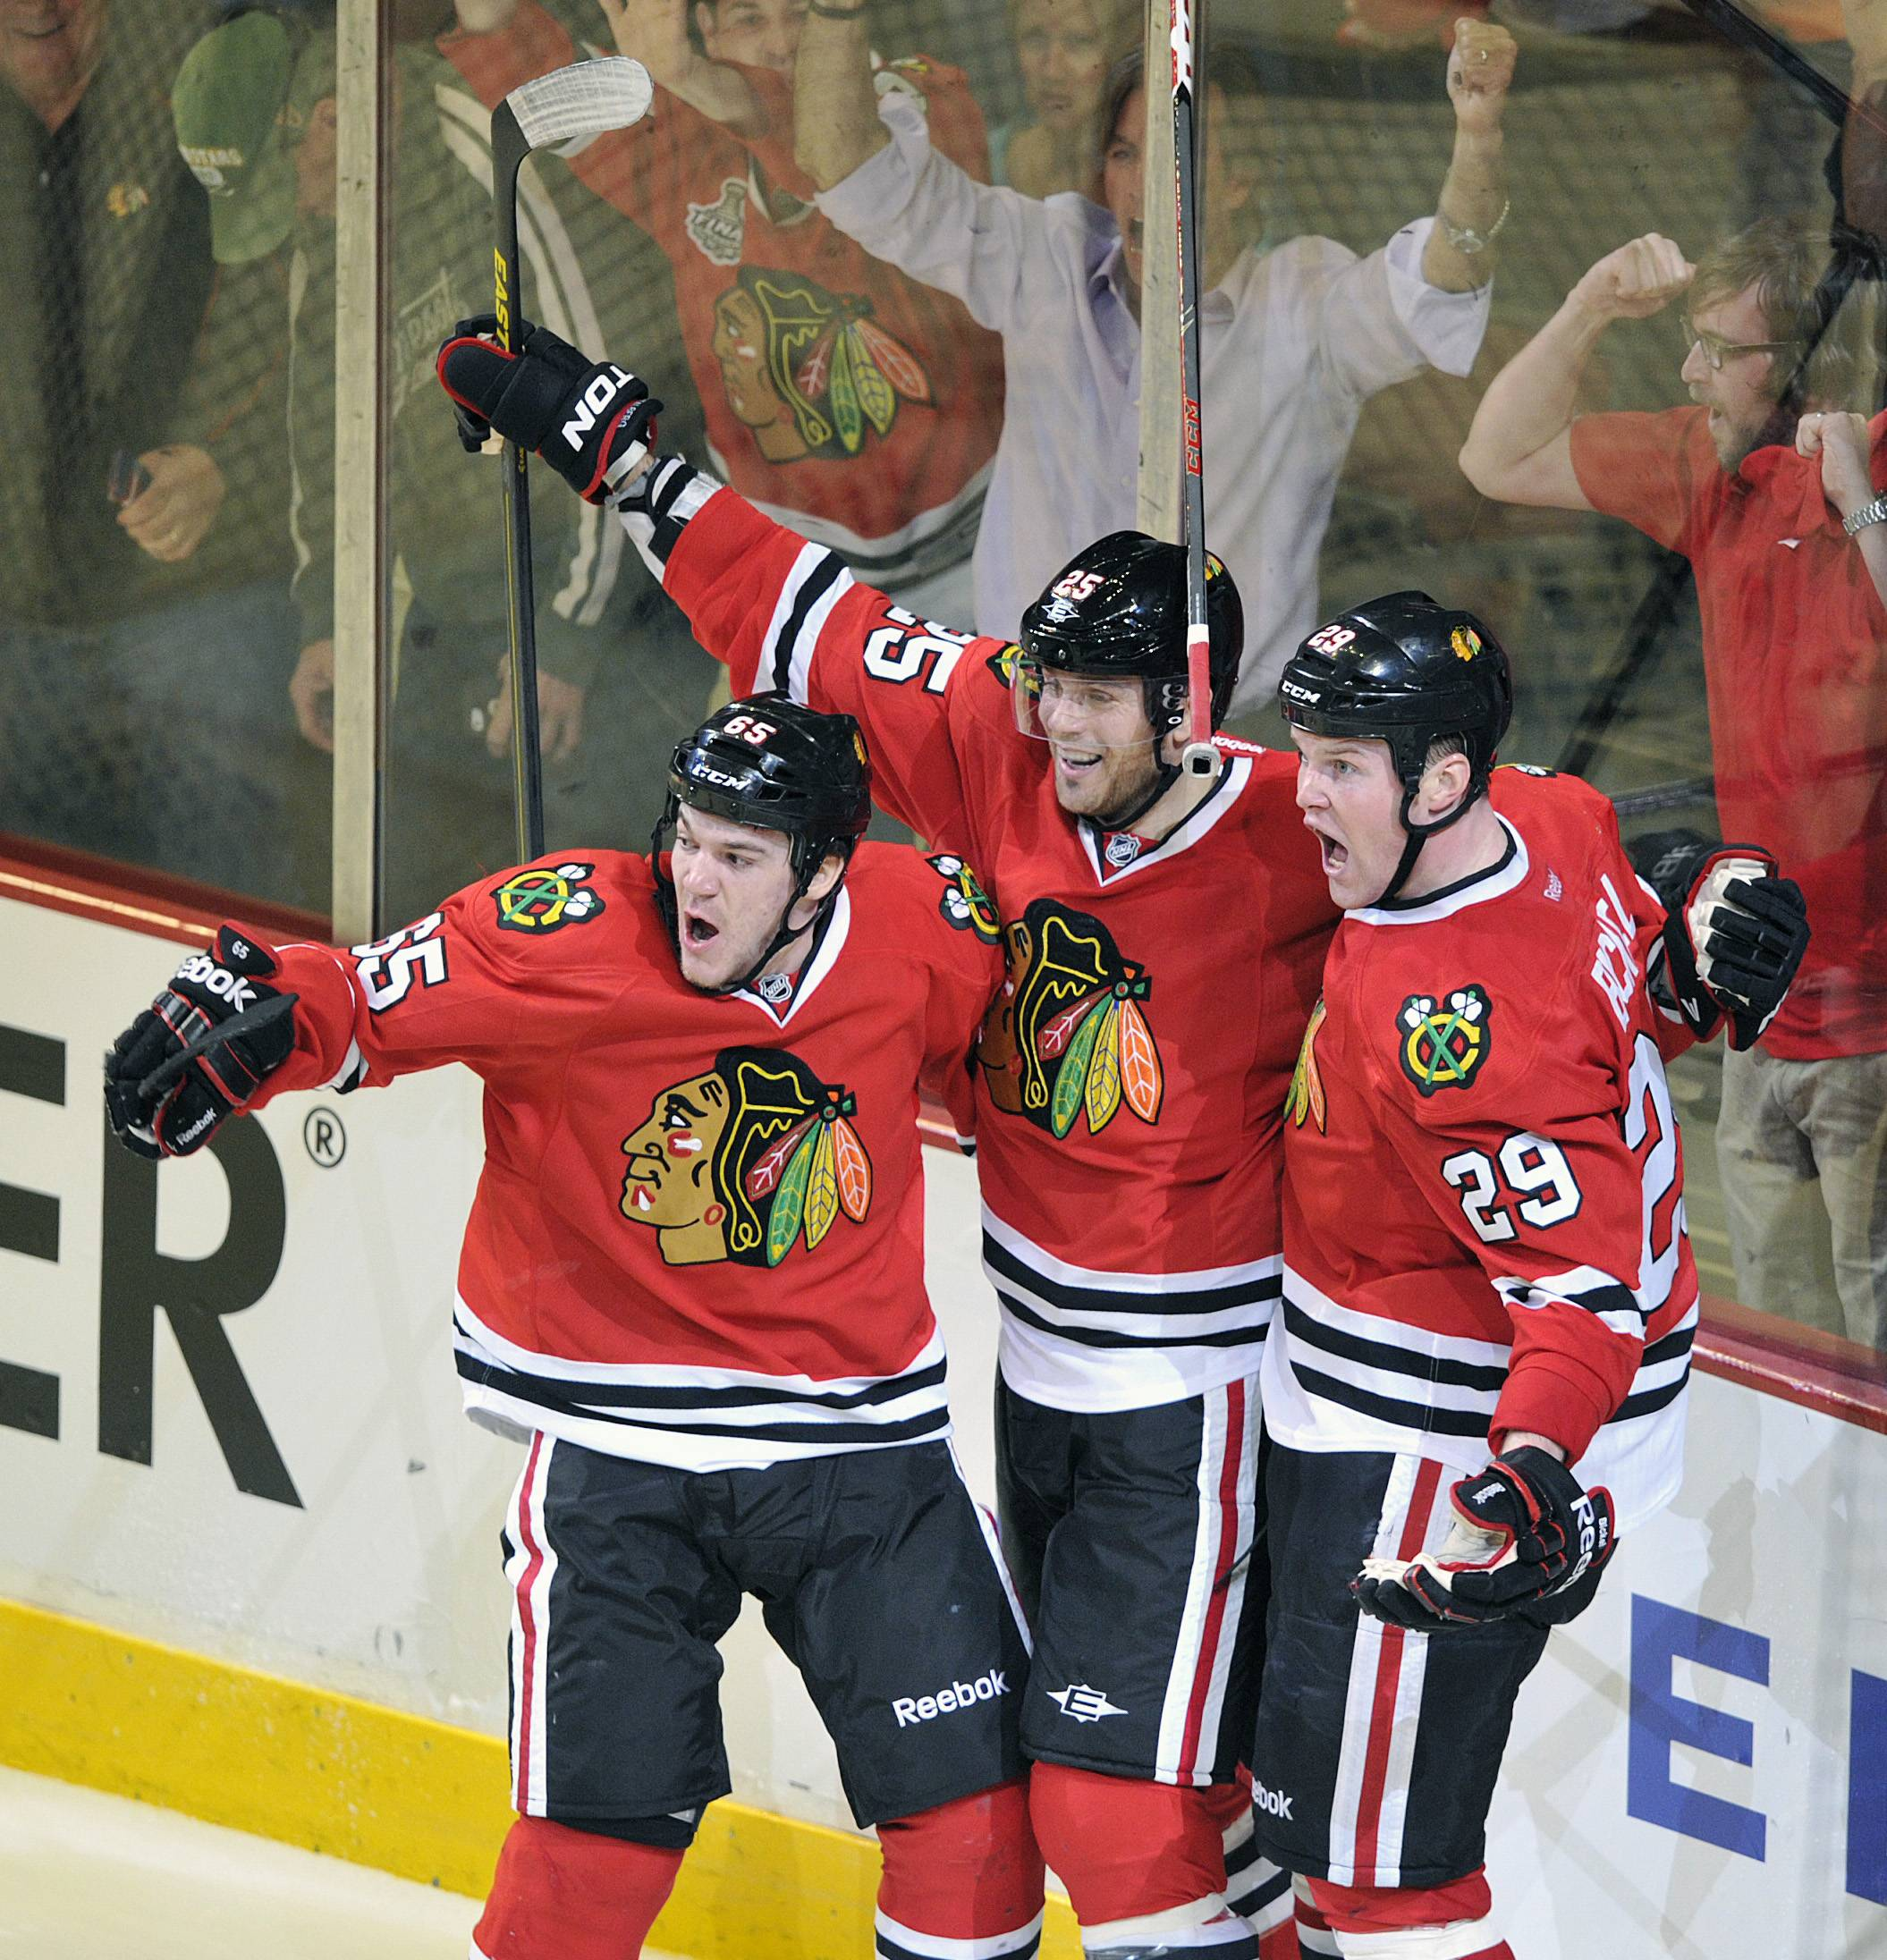 Chicago Blackhawks' Andrew Shaw left, Viktor Stalberg and Bryan Bickell (29) celebrate Bickell's game winning goal against the Minnesota Wild in overtime of Game 1 of an NHL hockey Stanley Cup playoff series Tuesday, April 30, 2013, in Chicago. The Blackhawks defeated the Wild 2-1.